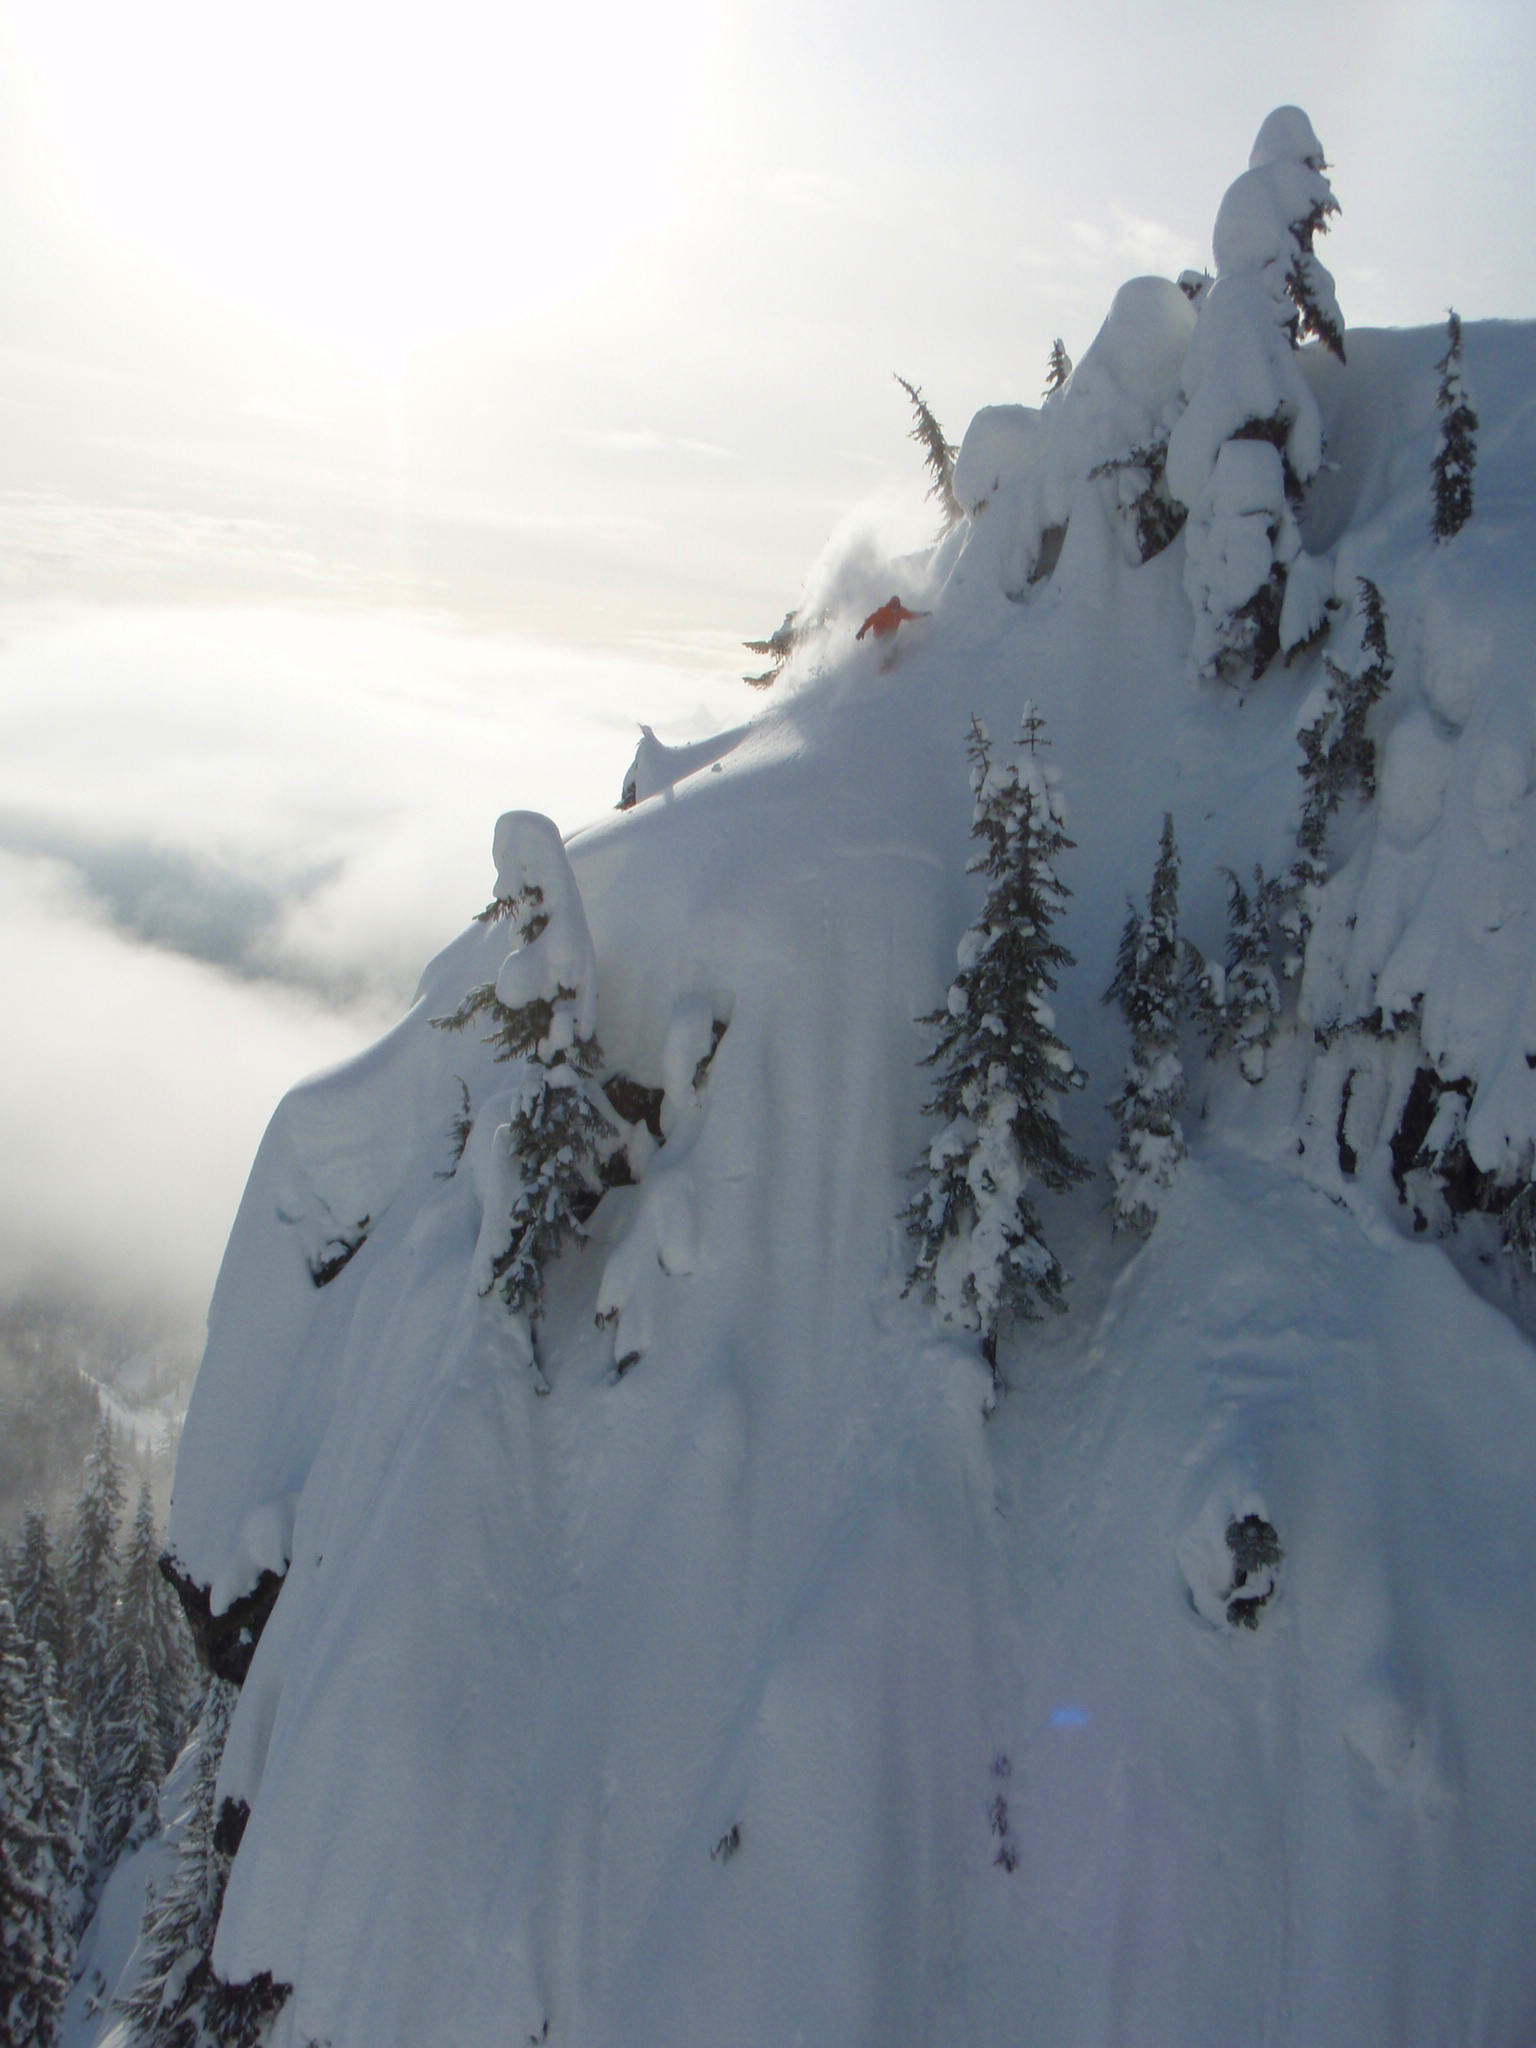 Manuel going for Tie Wall, Stevens Pass